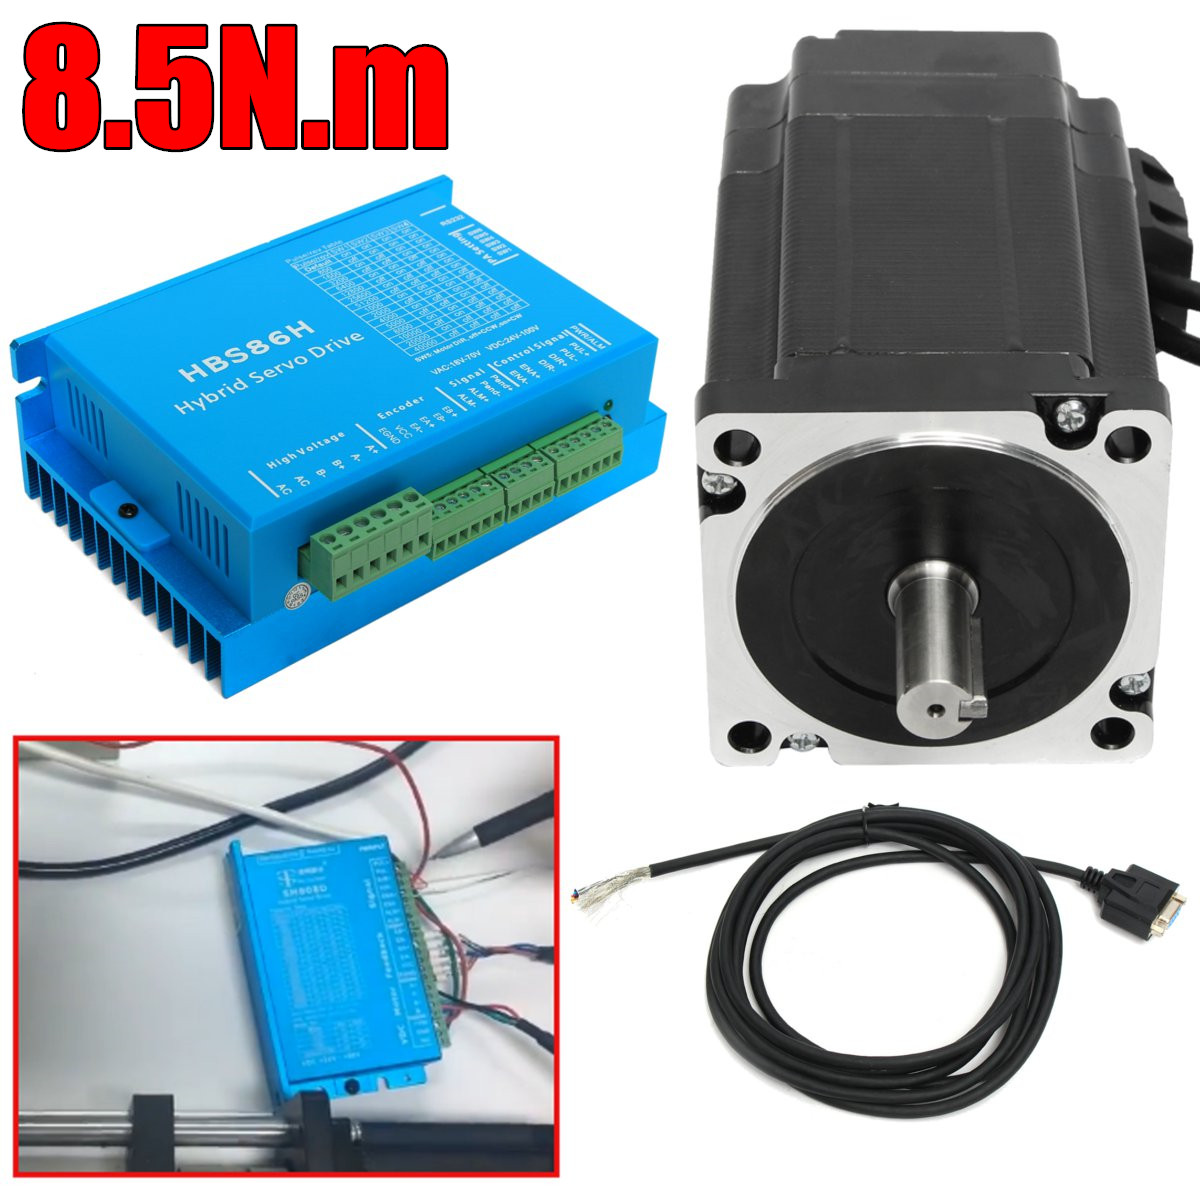 цена на 1 Set 6A HSS86 Hybrid Step-servo Driver CNC Controller Kit Nema34 Closed Loop 8.5N.m Servo motor Stepper Motor